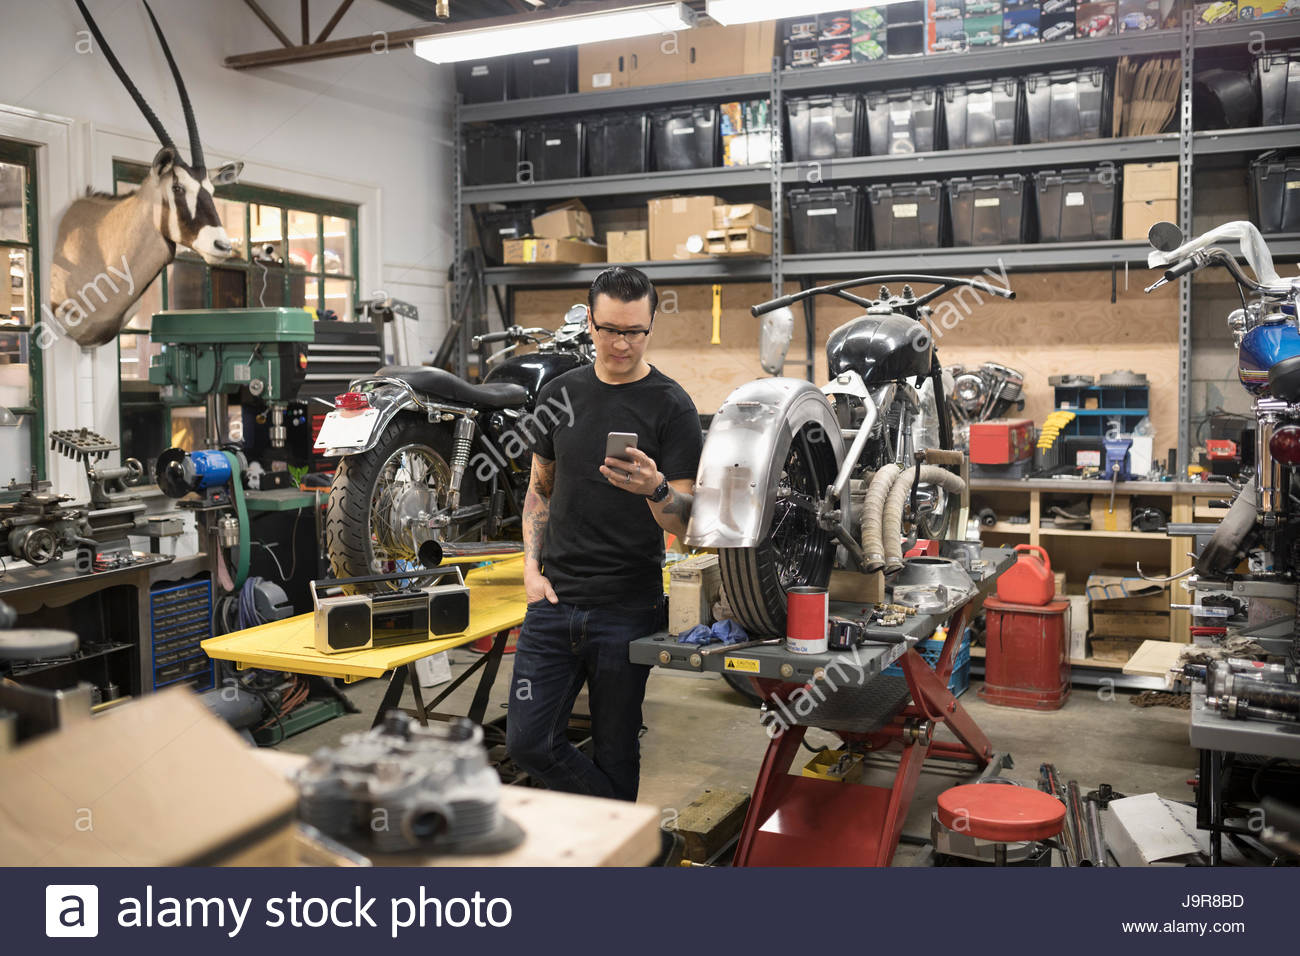 Motorcycle mechanic texting with cell phone in auto repair shop - Stock Image